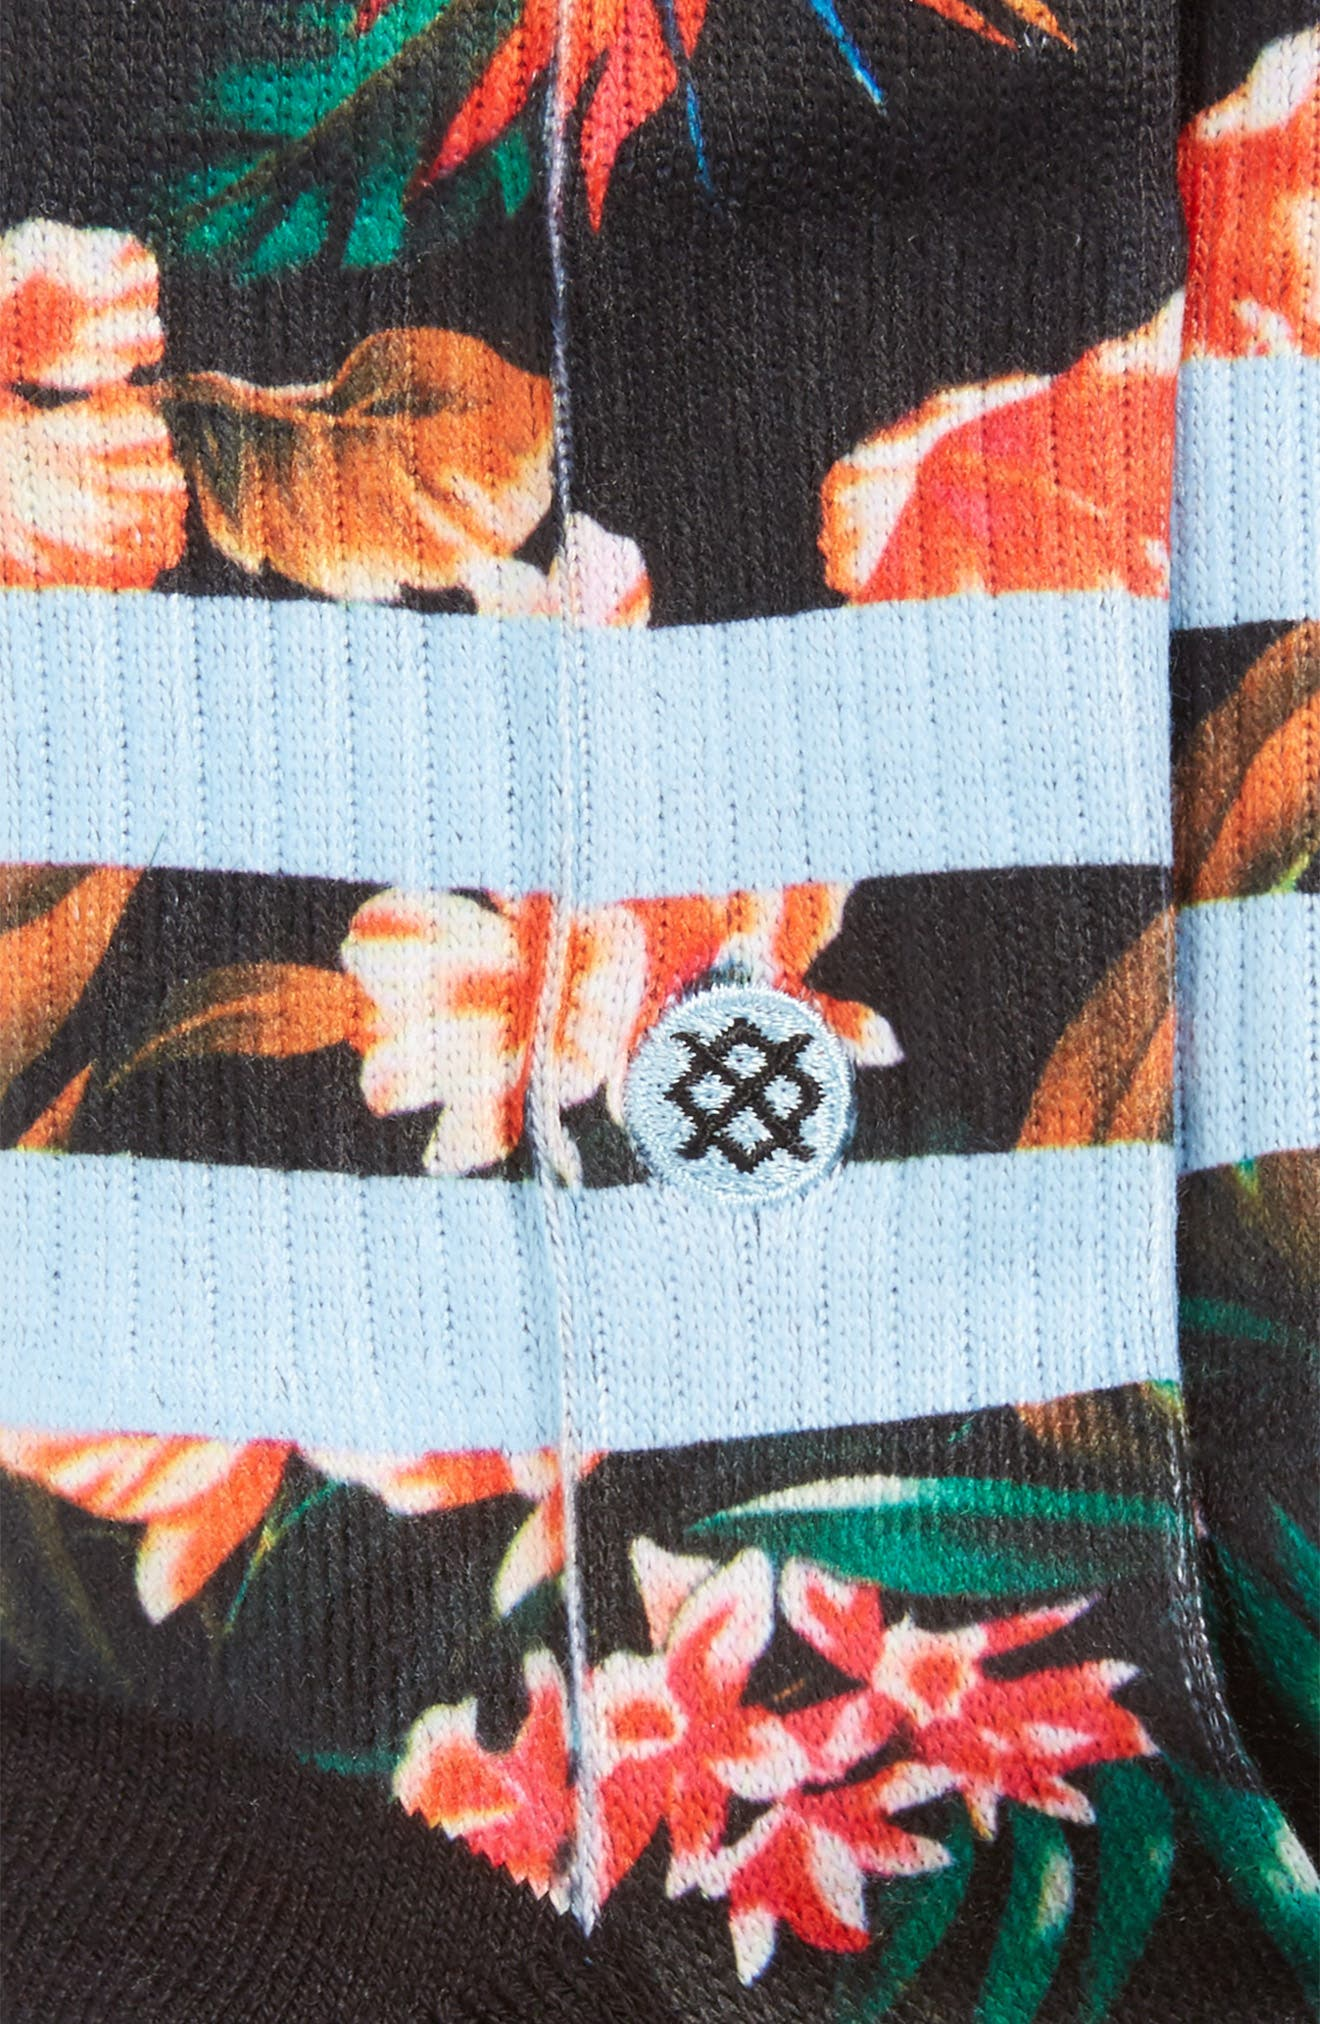 Floral Trades Socks,                             Alternate thumbnail 3, color,                             001